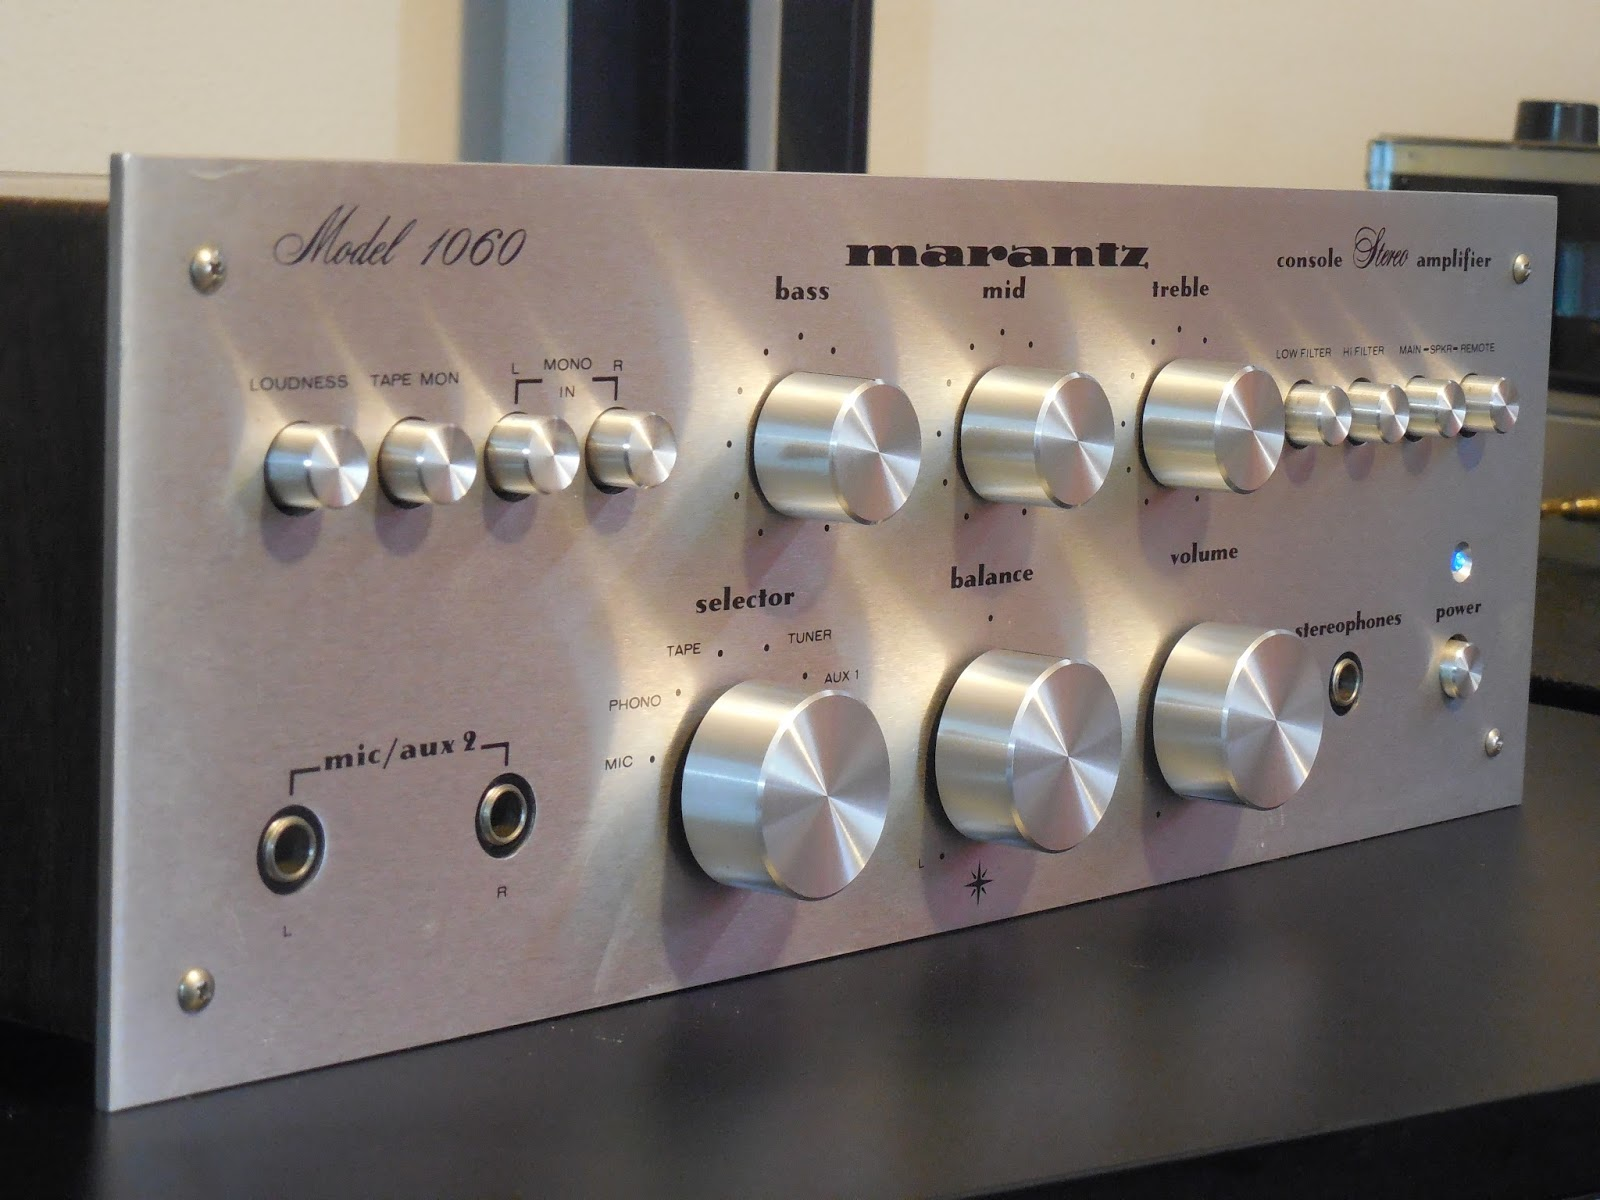 Vintage Hi Fi Audio Restorations June 2016 25w Hifi Amplifier With Mosfet Today We Are Showcasing A Marantz 1060 Integrated The Is By Far One Of Most Well Regarded Amplifiers Period